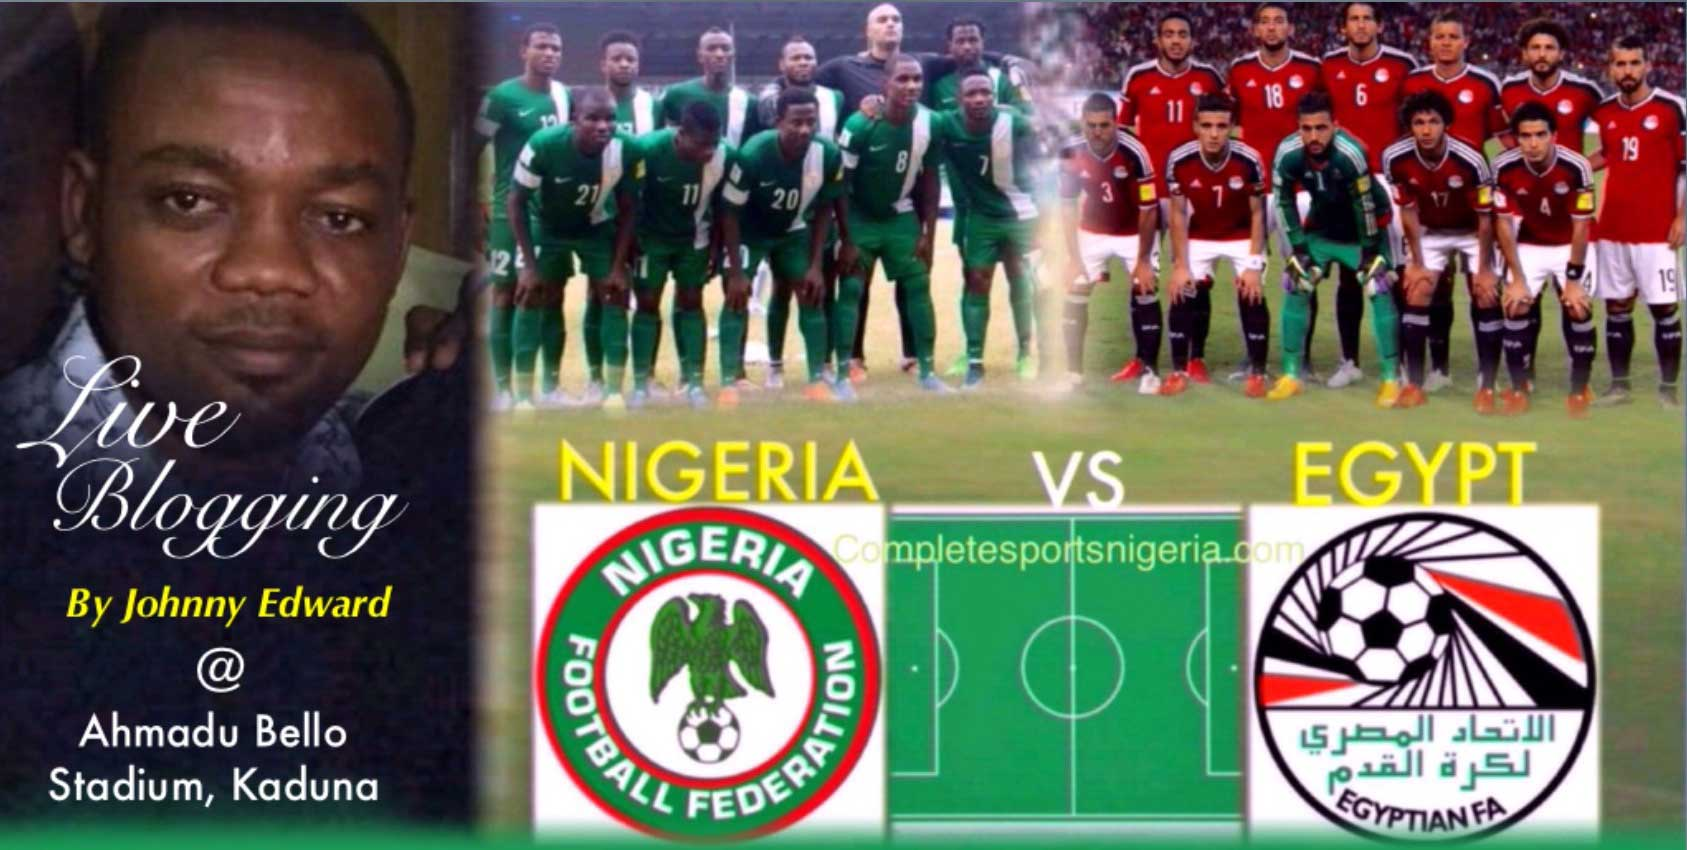 Nigeria vs Egypt: Minute by Minute Live Blogging